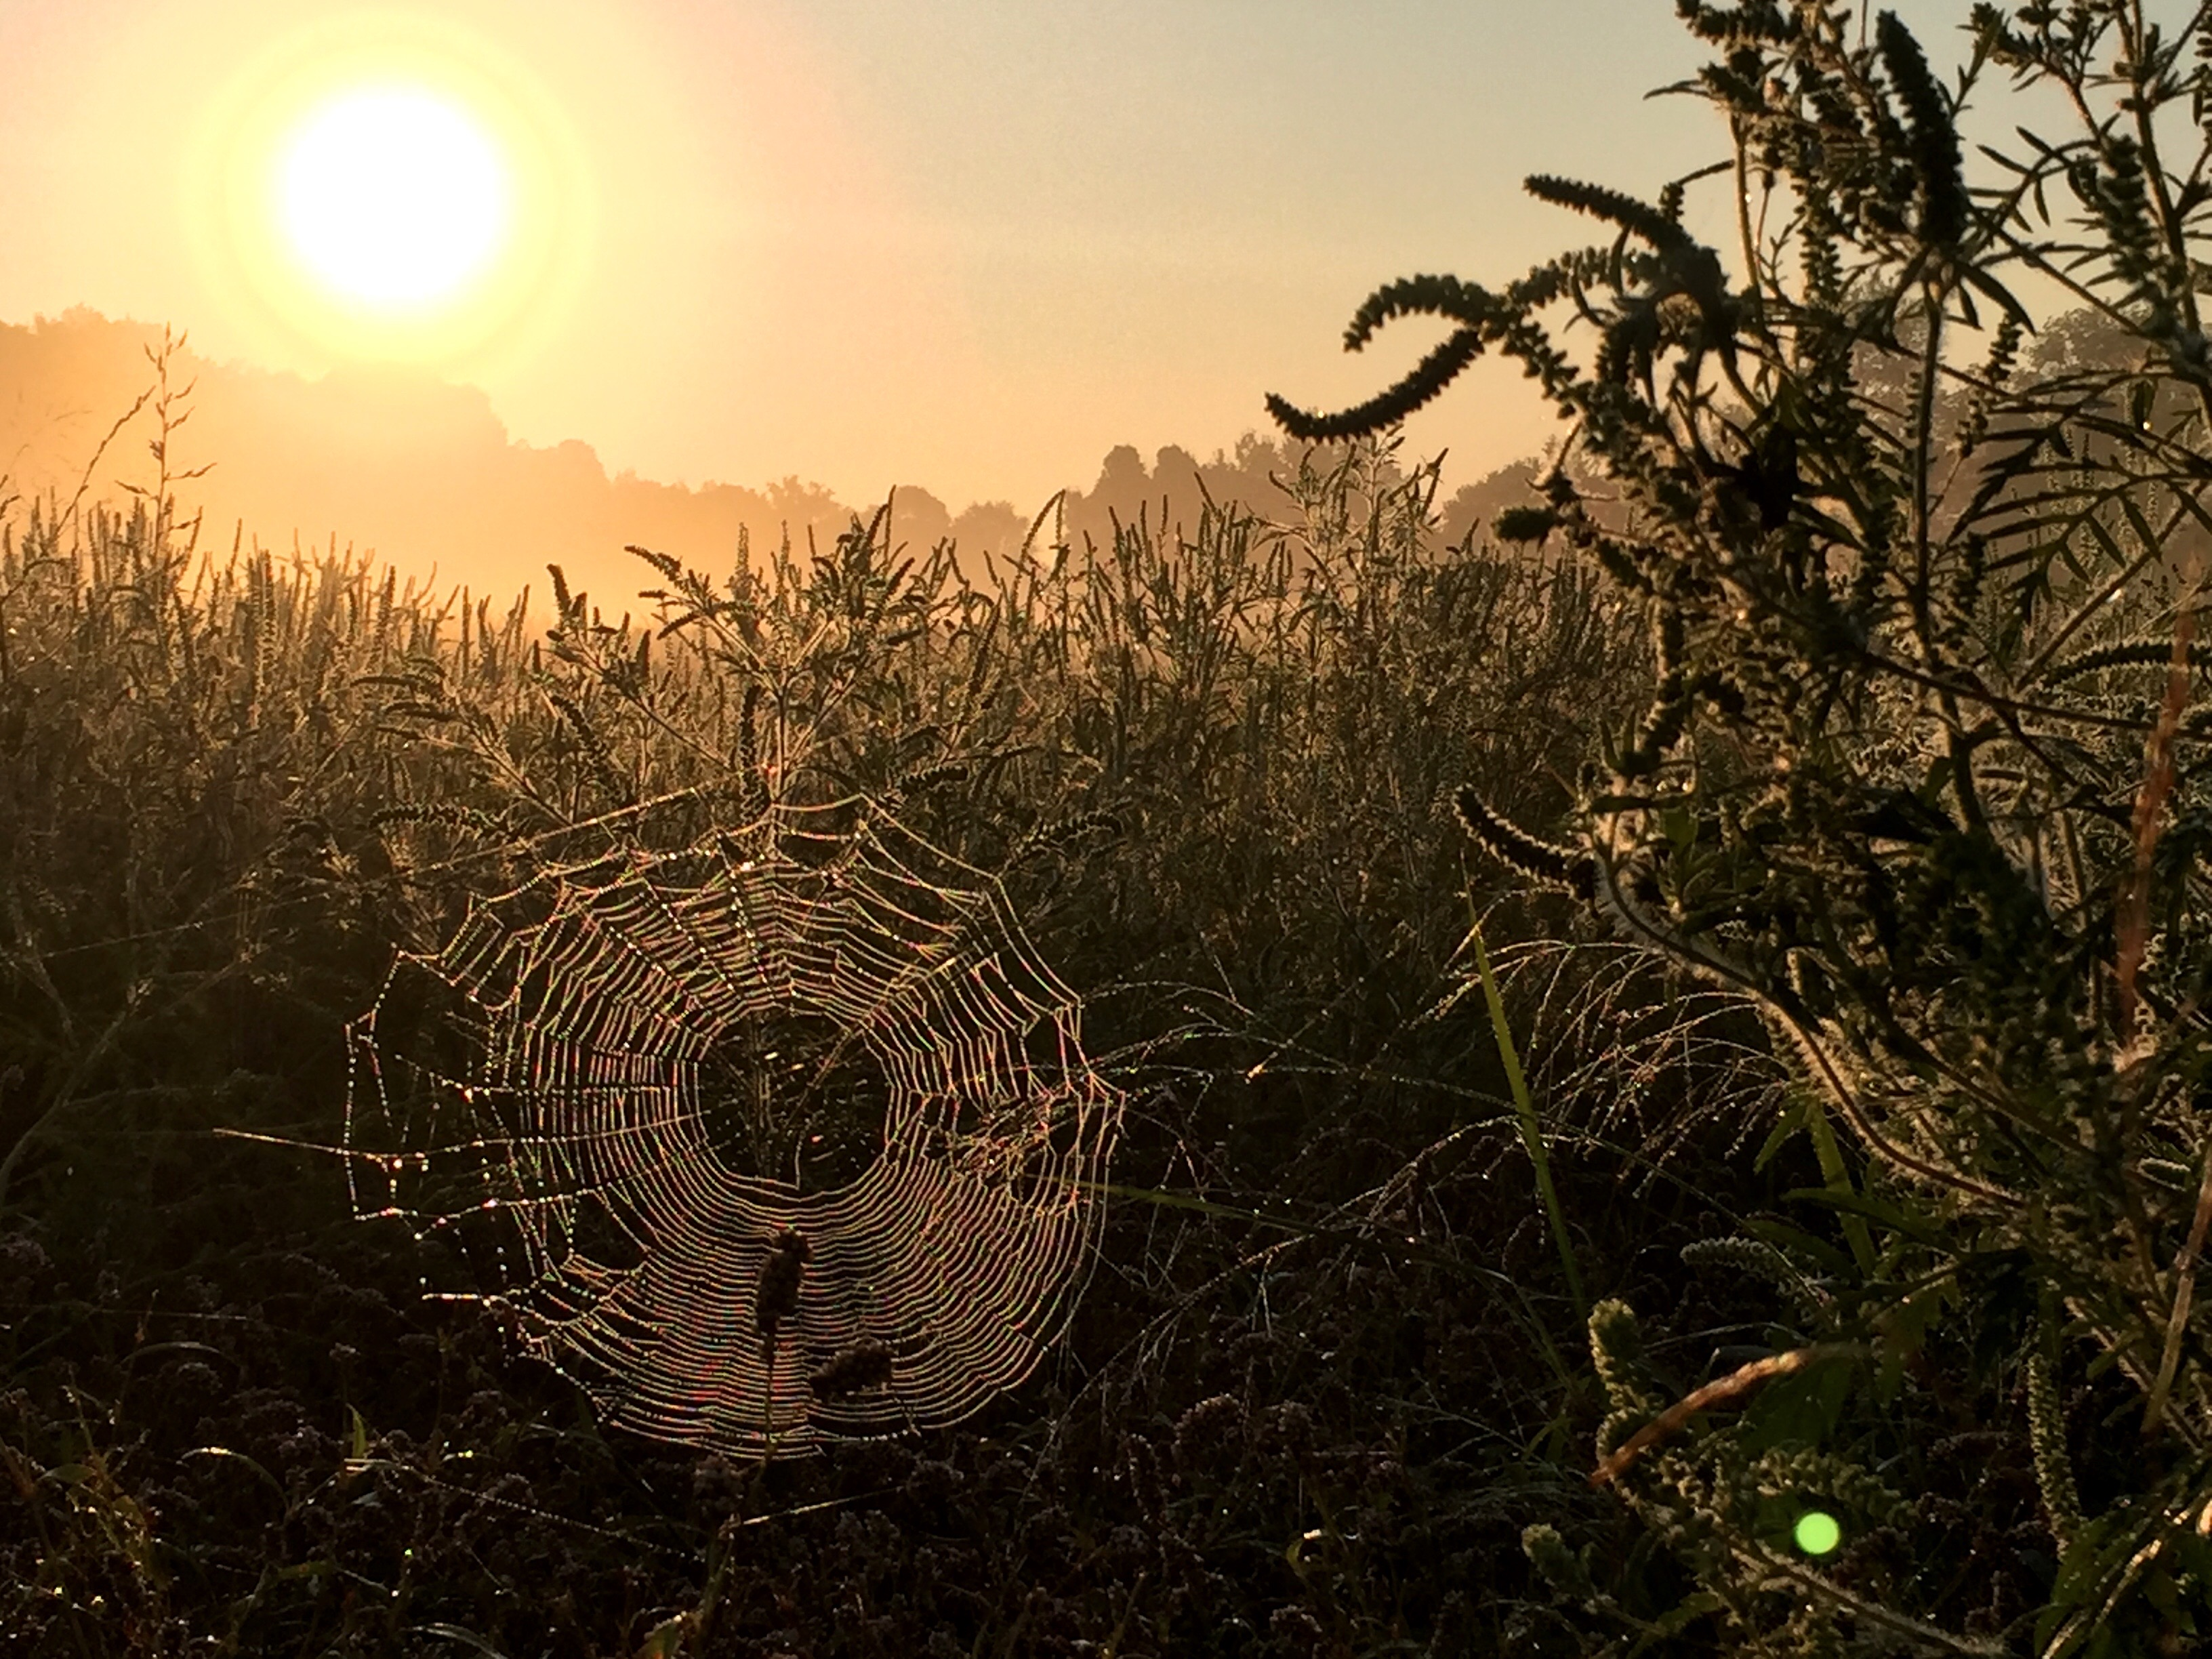 Web in morning dew